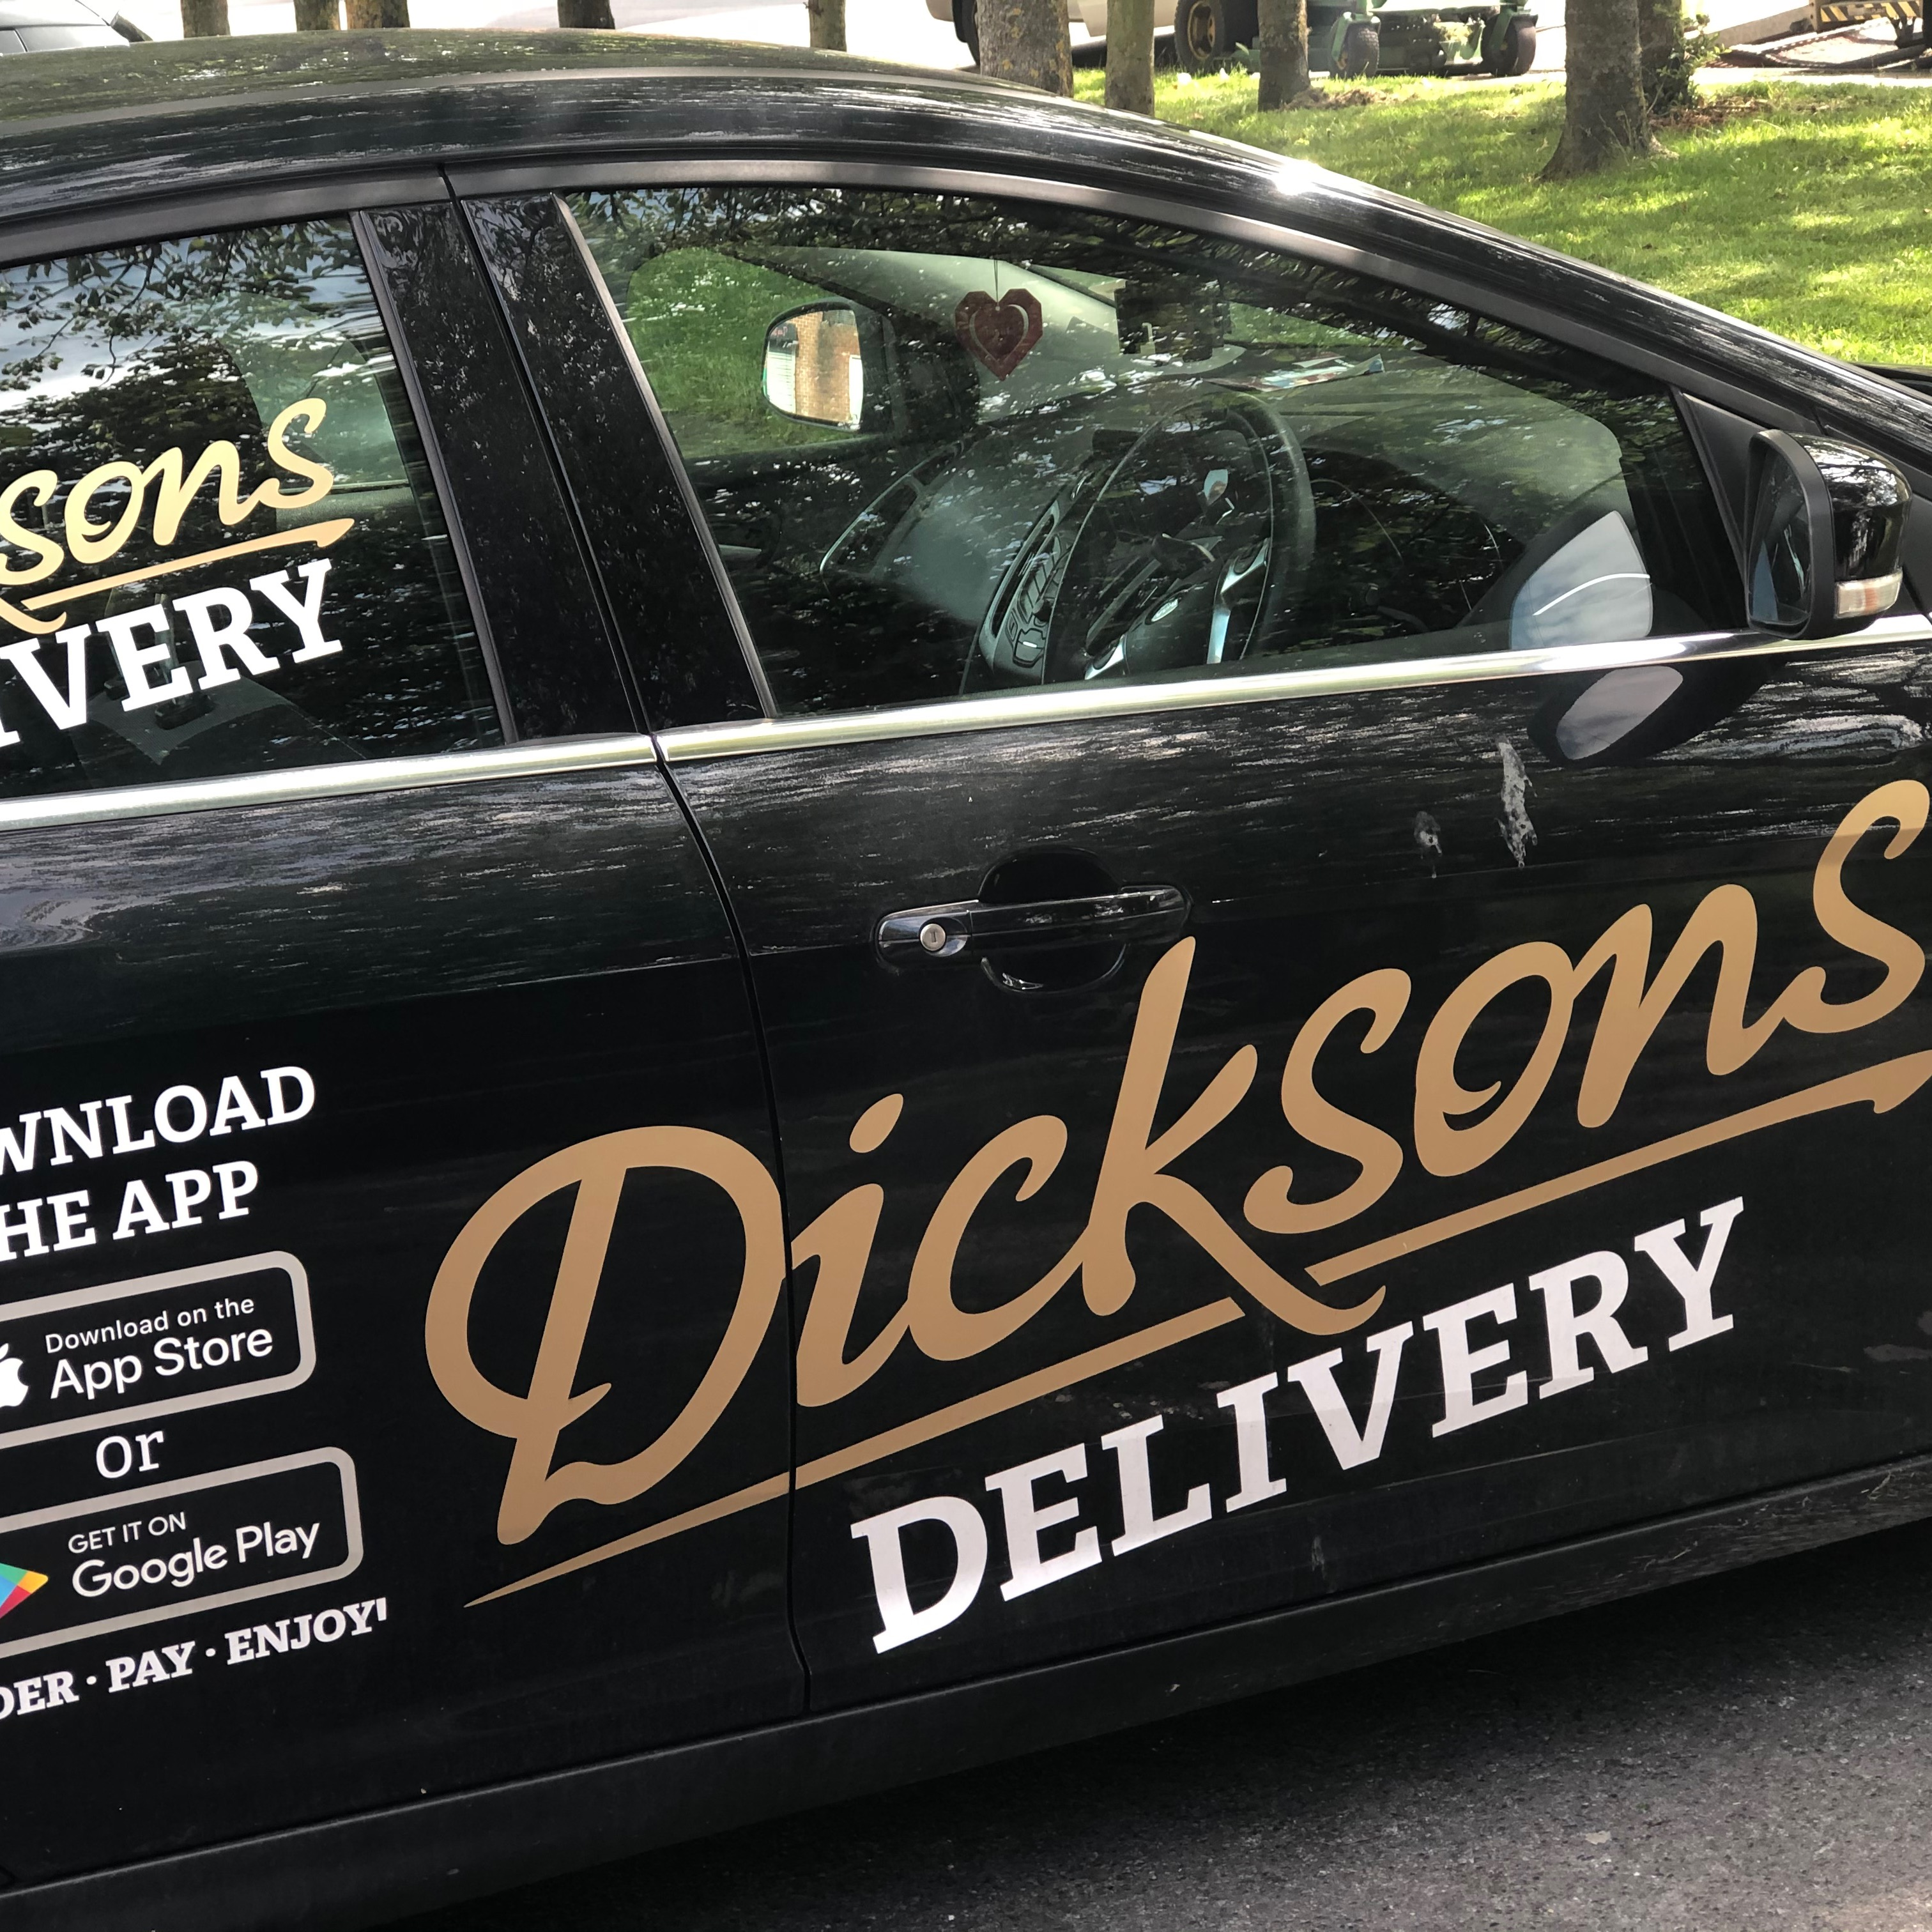 Dicksons Collection and Delivery